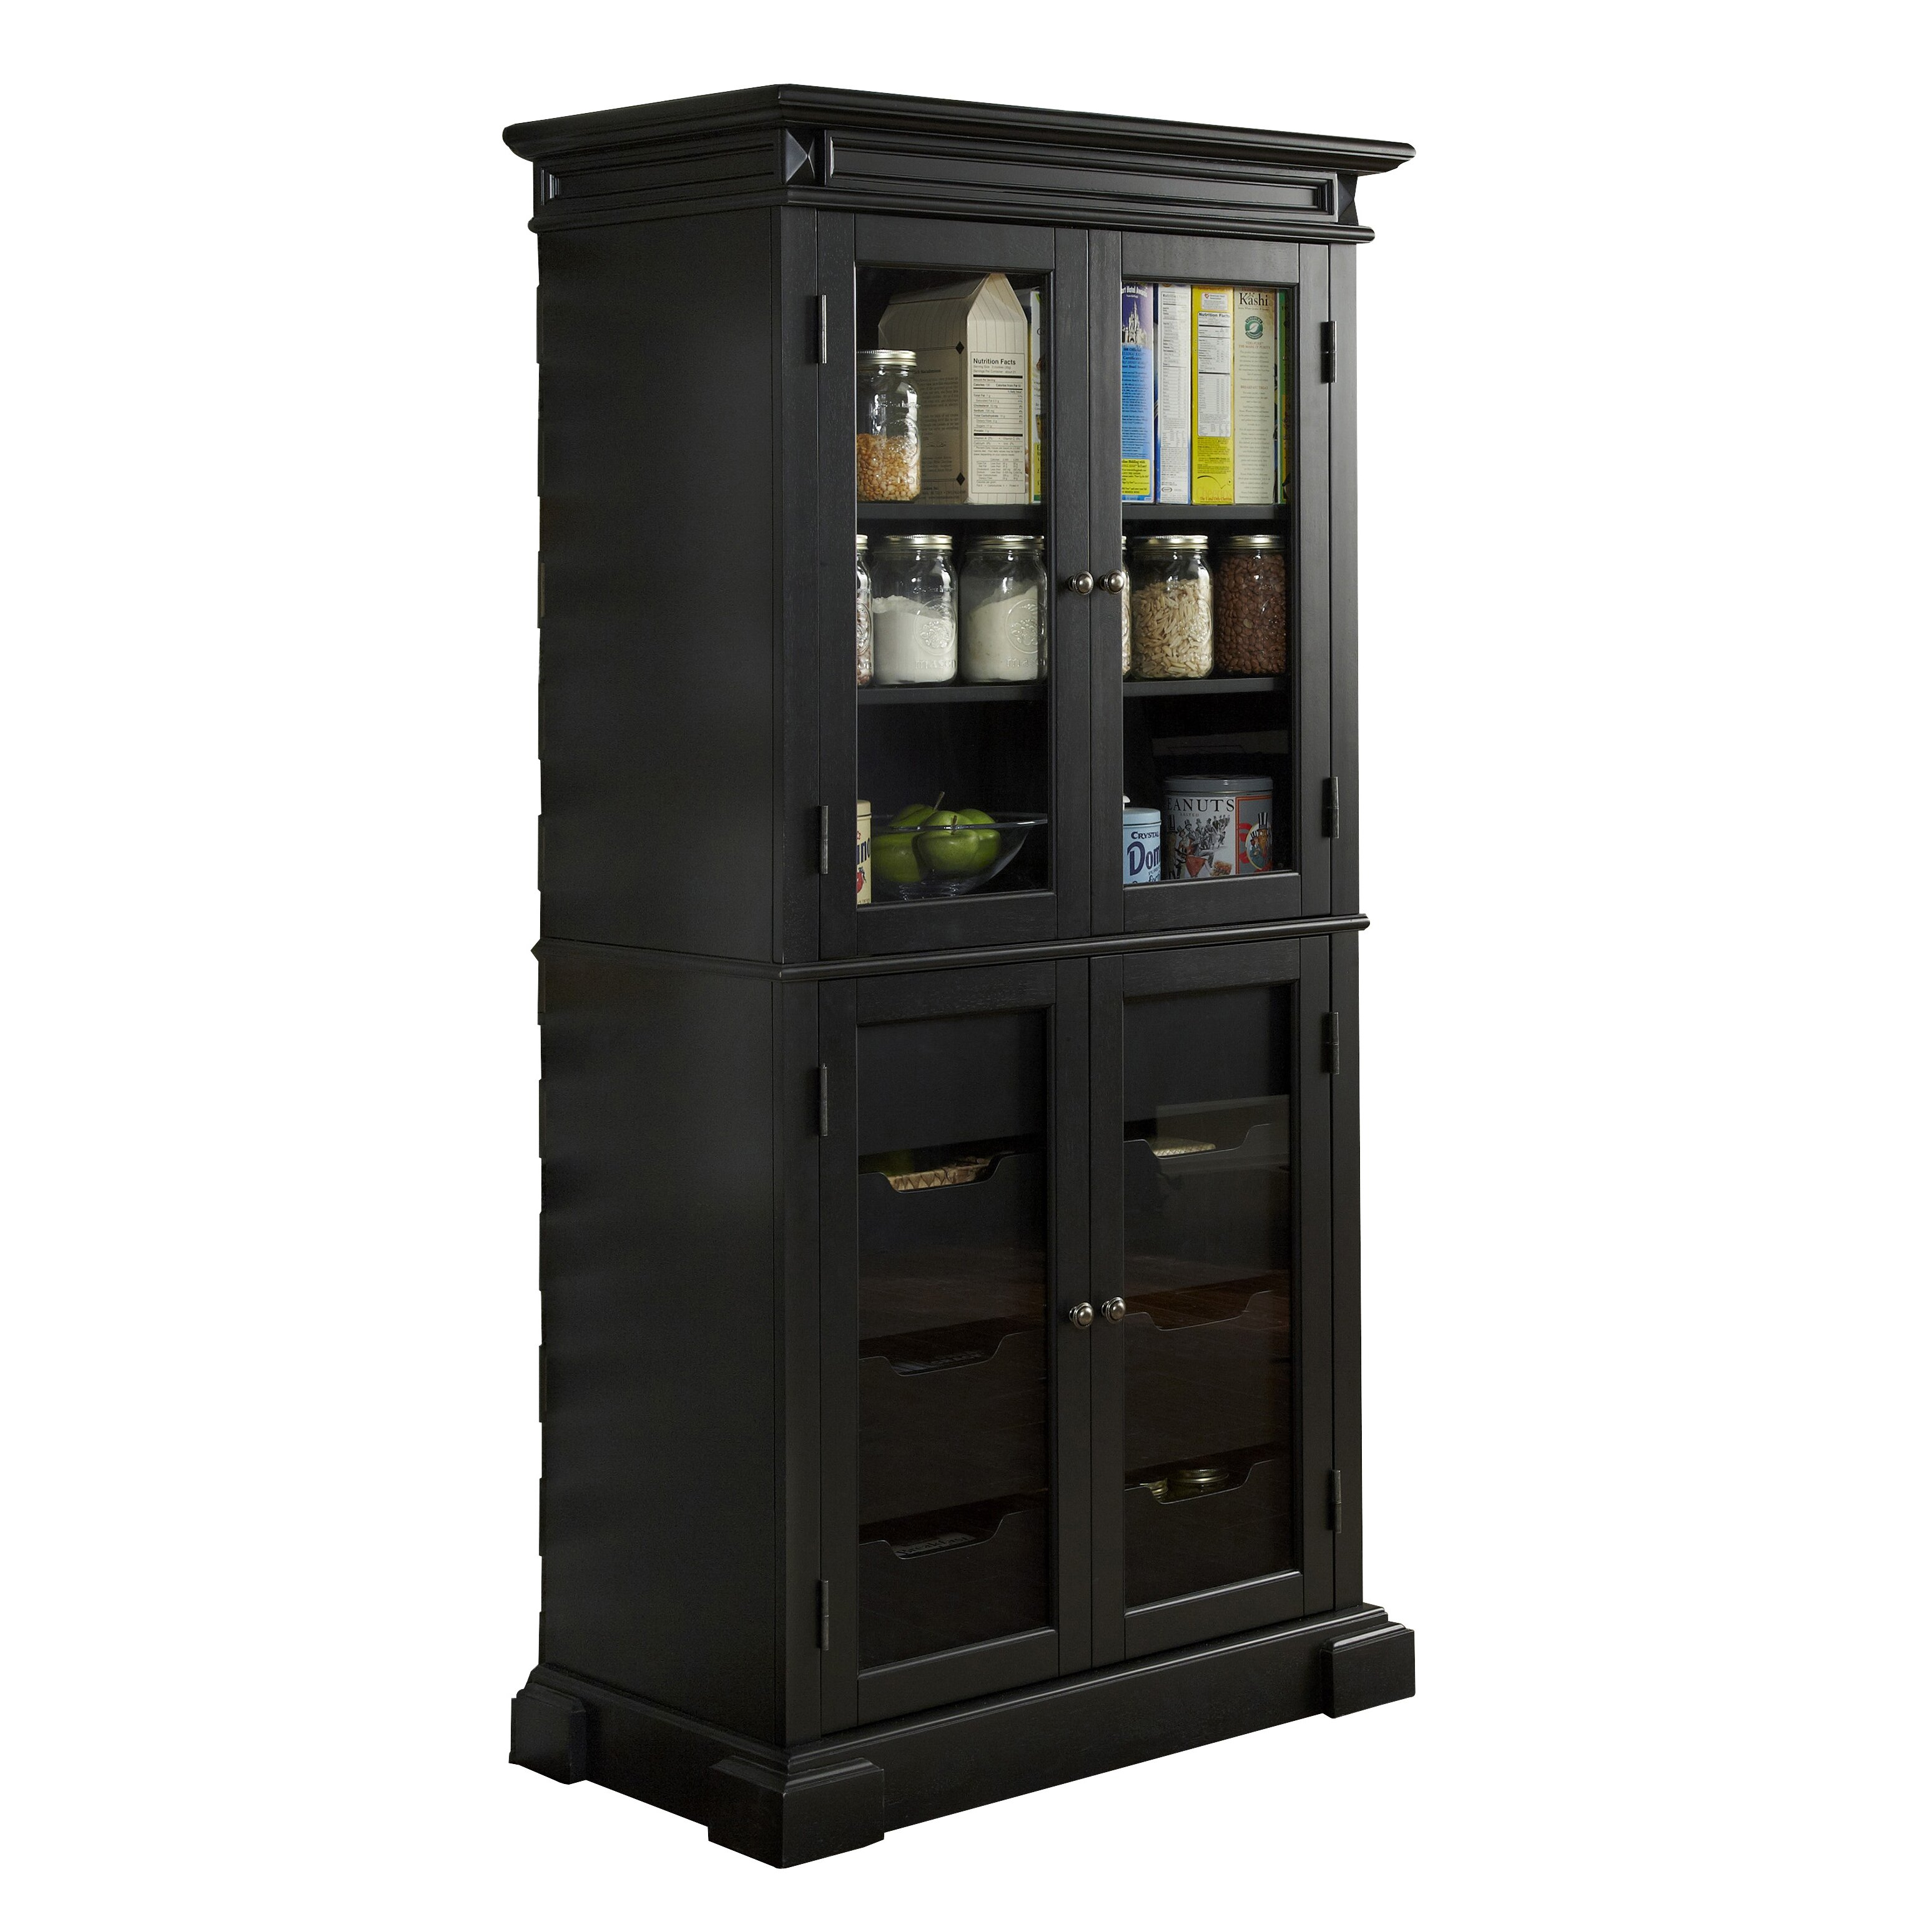 August Grove Collette Kitchen Pantry Reviews Wayfair